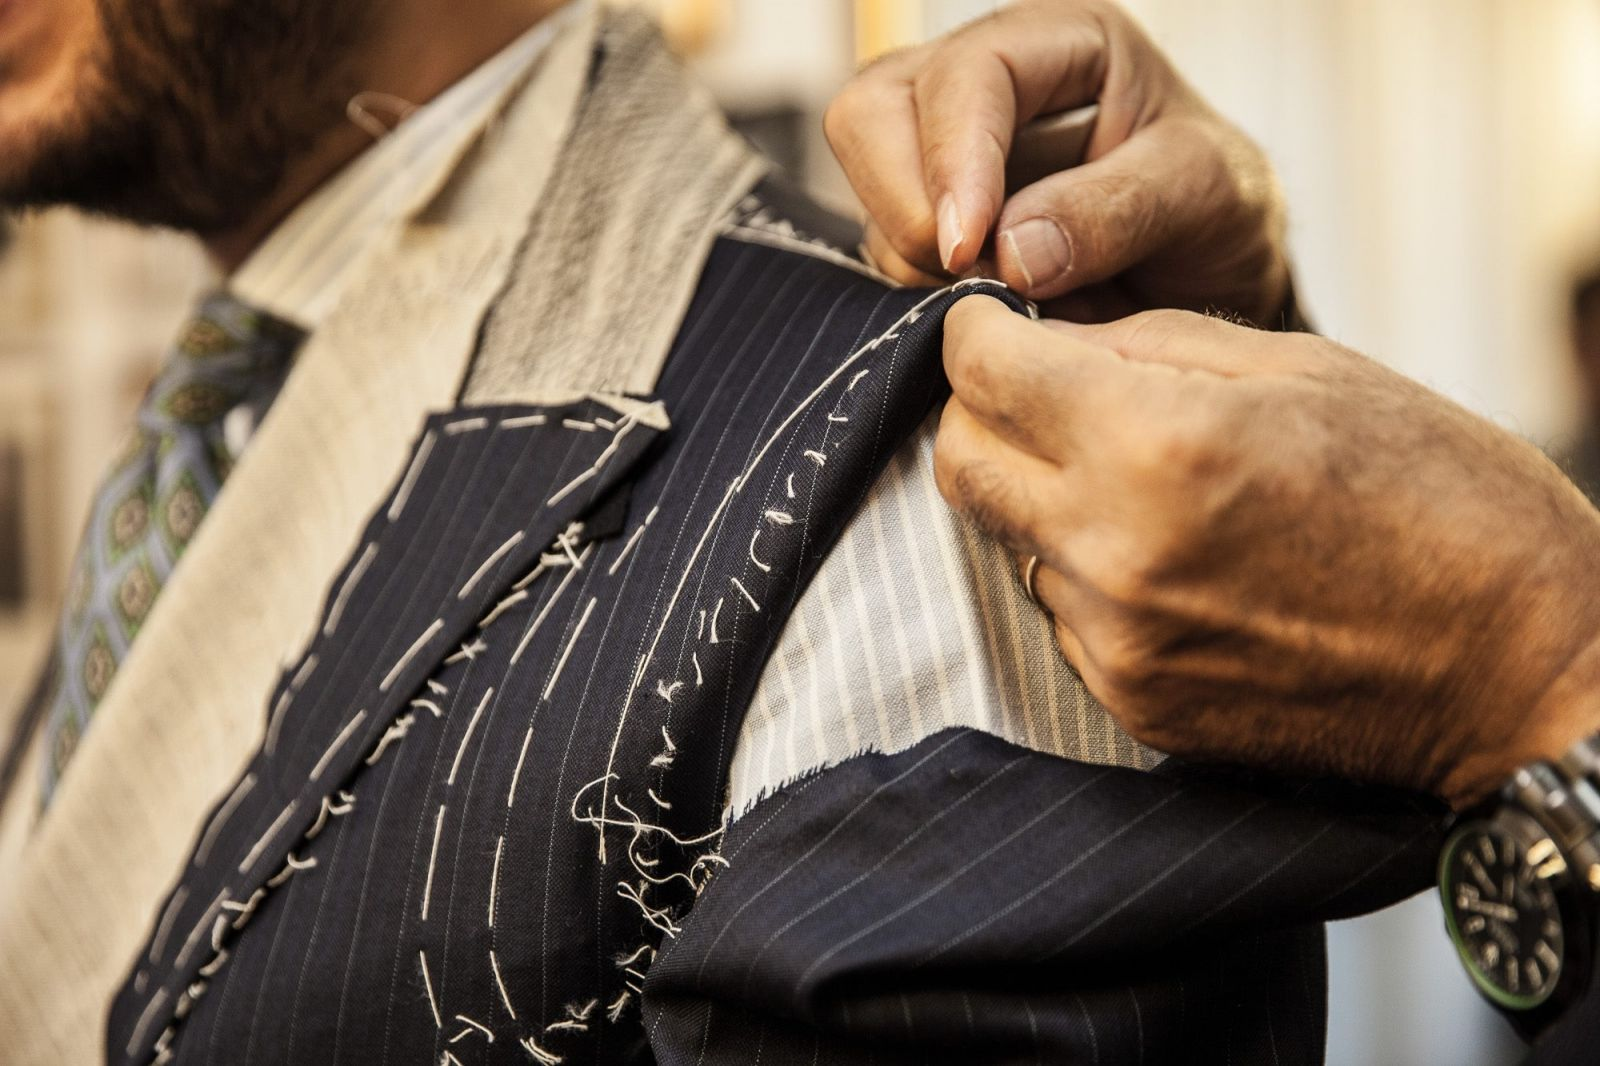 A Bespoke Suit 's required hours of handwork to be completed.